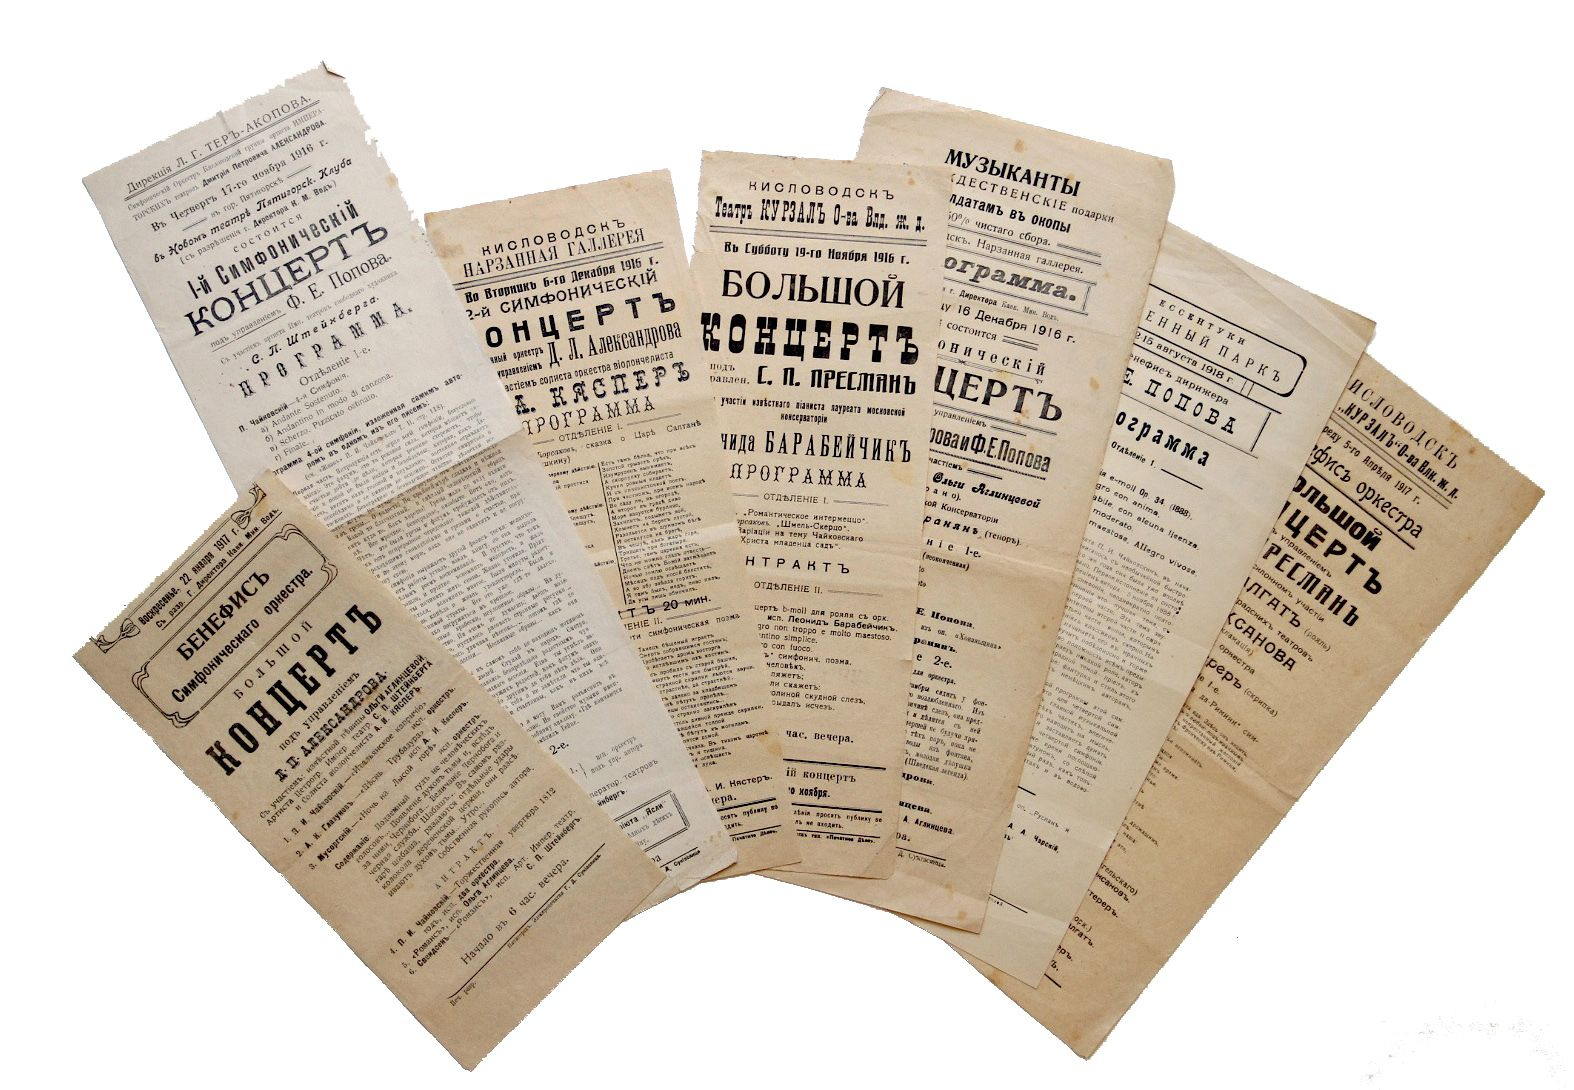 Collection of seven playbills and programs for concerts in Essentuki, Kislovodsk, and Piatigorsk, 1916-1917.